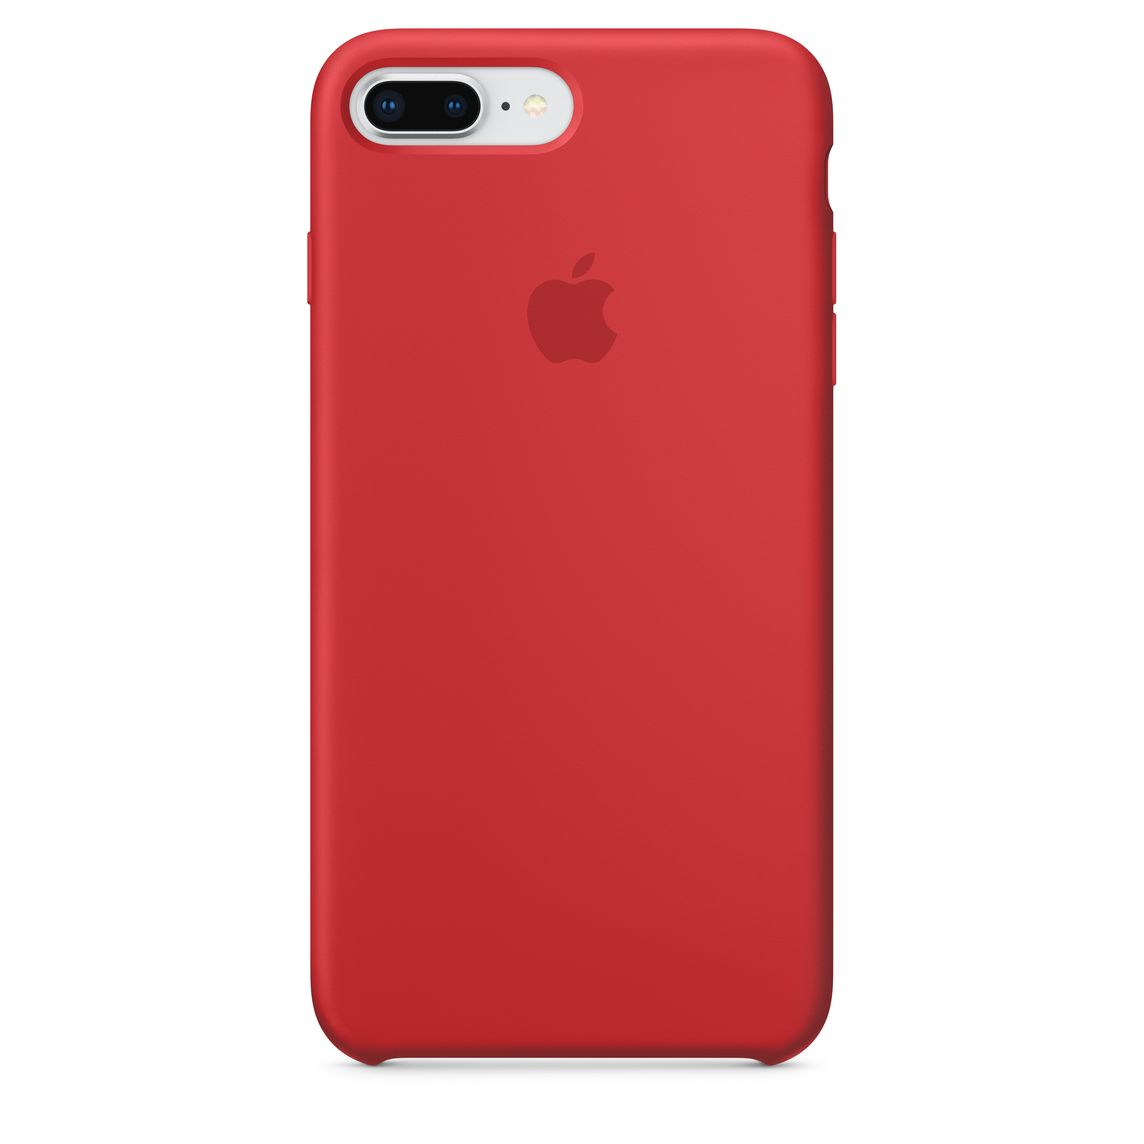 sports shoes ce2e9 05ec2 iPhone 8 Plus / 7 Plus Silicone Case - (PRODUCT)RED